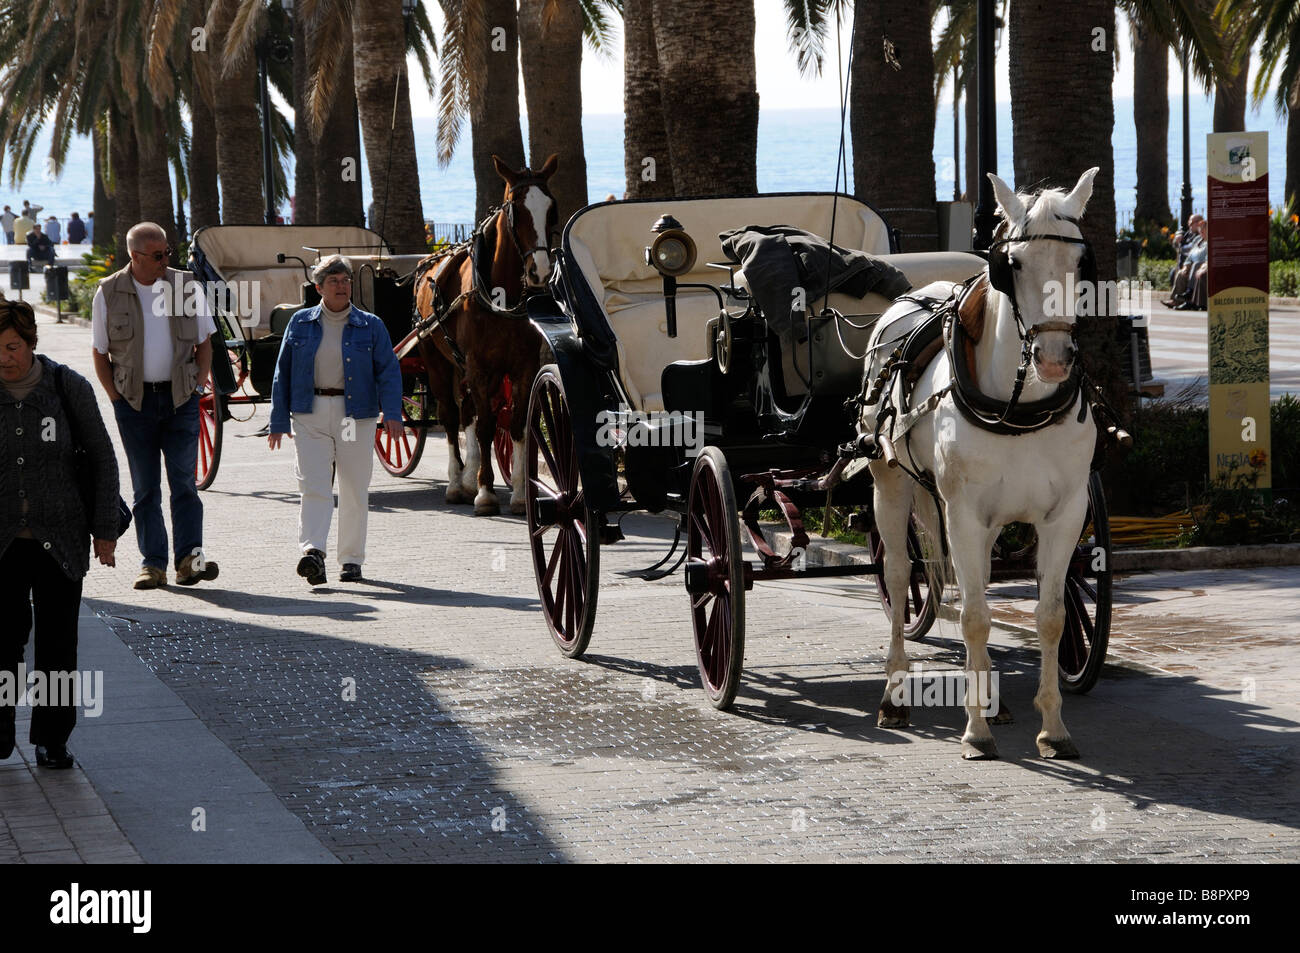 Horse drawn taxi in the town centre of Nerja in southern Spain wait for custom on the roadside - Stock Image